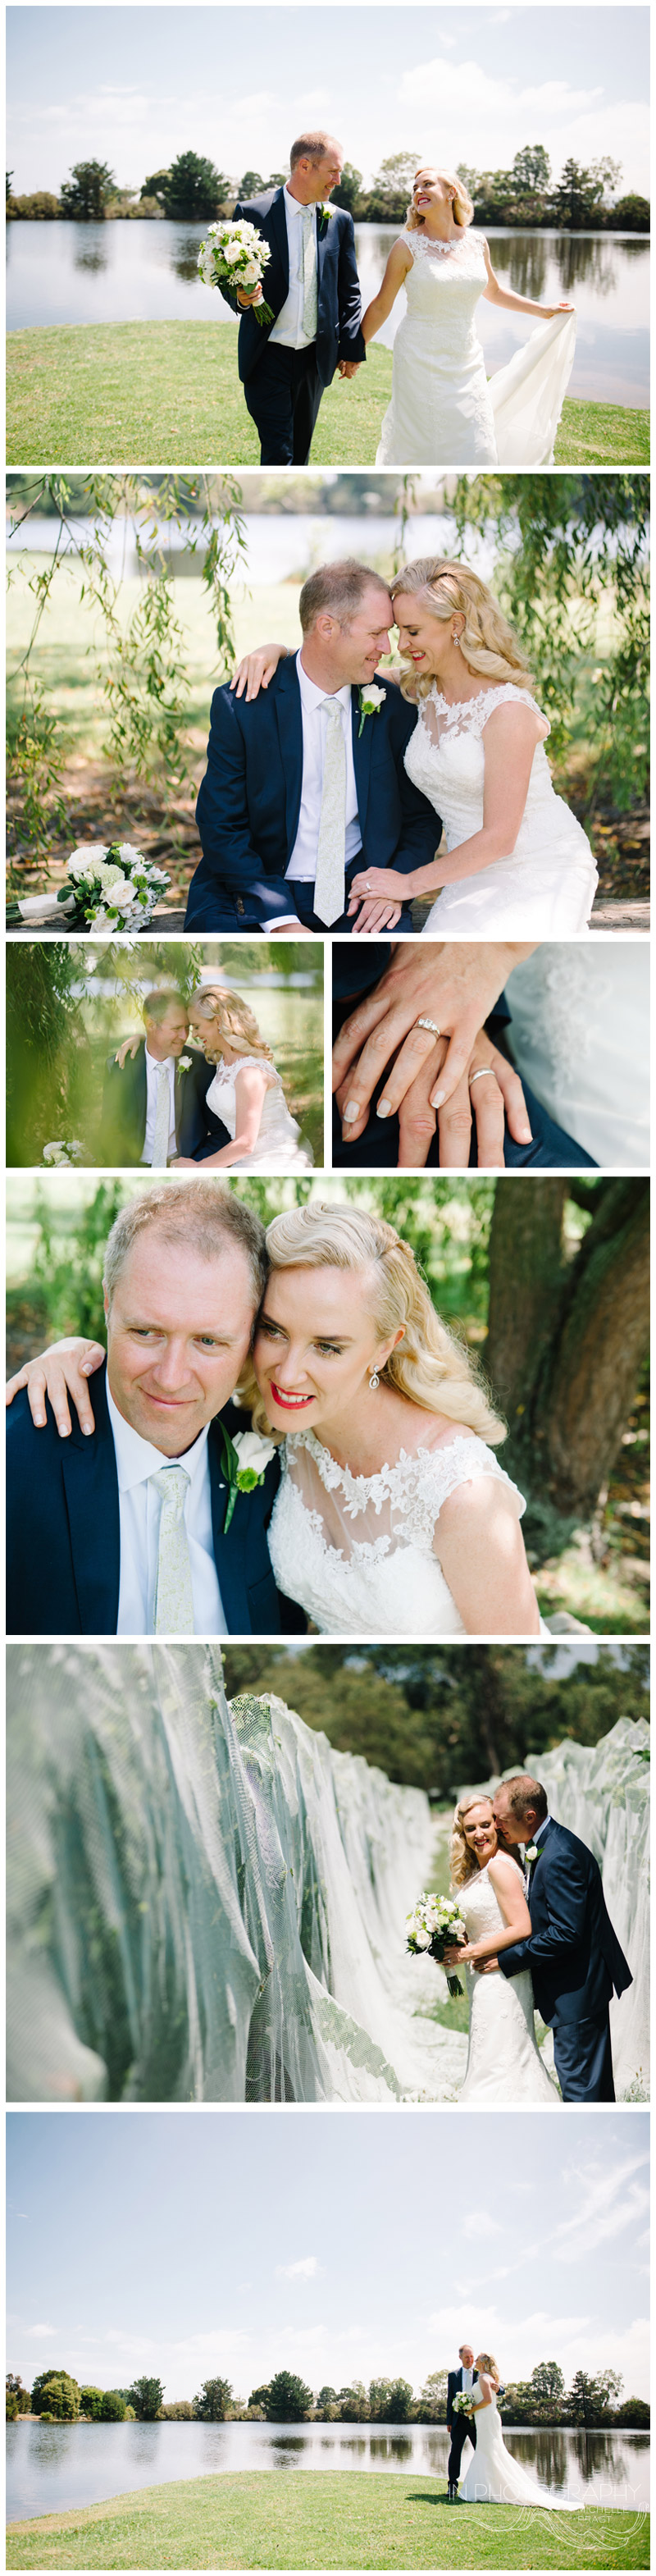 bride and groom images at Stillwater on Mornington peninsula